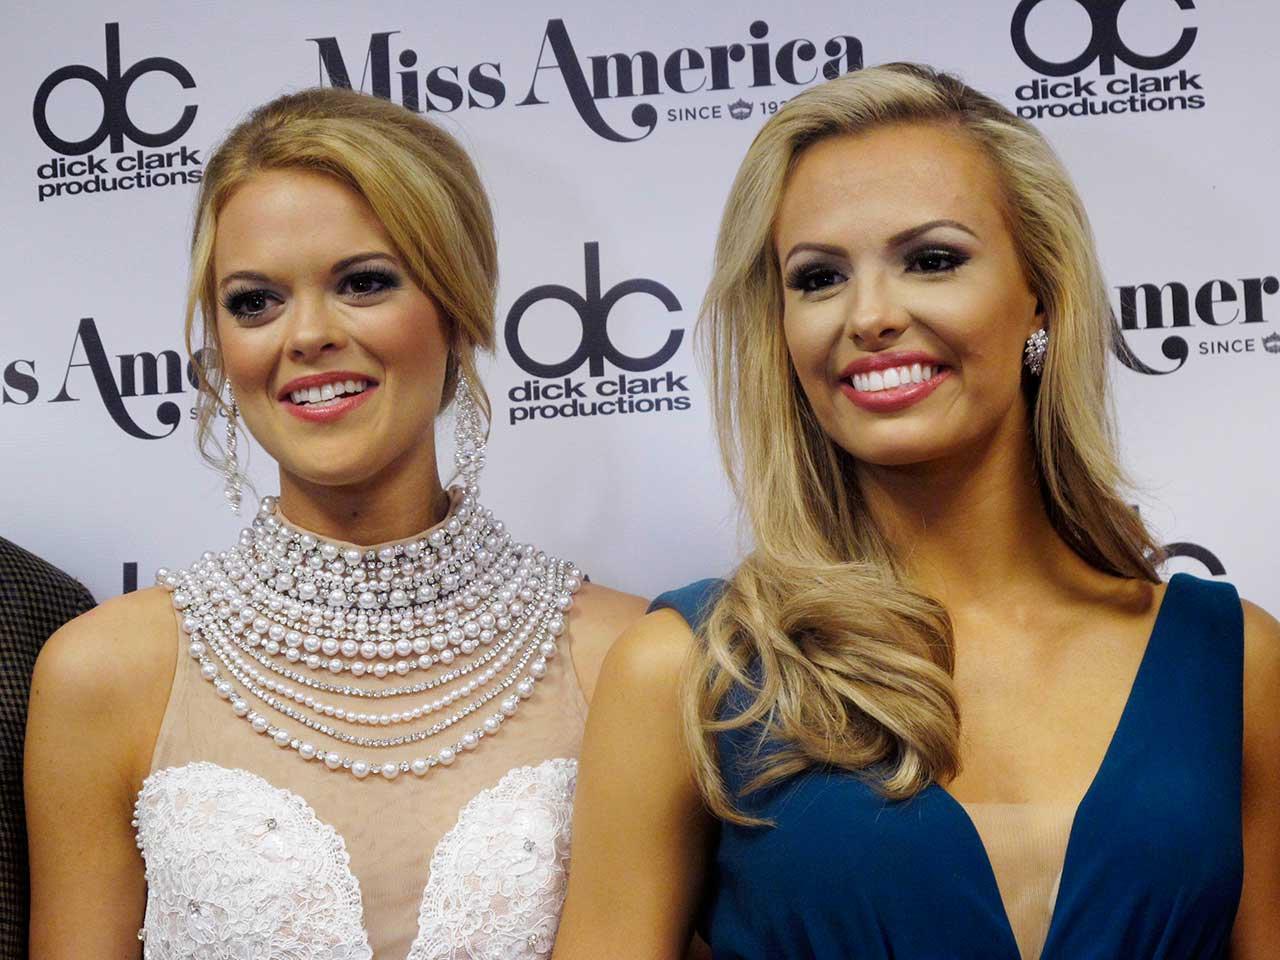 "<div class=""meta image-caption""><div class=""origin-logo origin-image ap""><span>AP</span></div><span class=""caption-text"">Miss Louisiana April Nelson, left, and Miss Florida Mary Katherine Fechte, right, on Thurs. Sept. 10, 2015 after winning awards in the Miss America preliminary competition. (AP Photo/Wayne Parry)</span></div>"